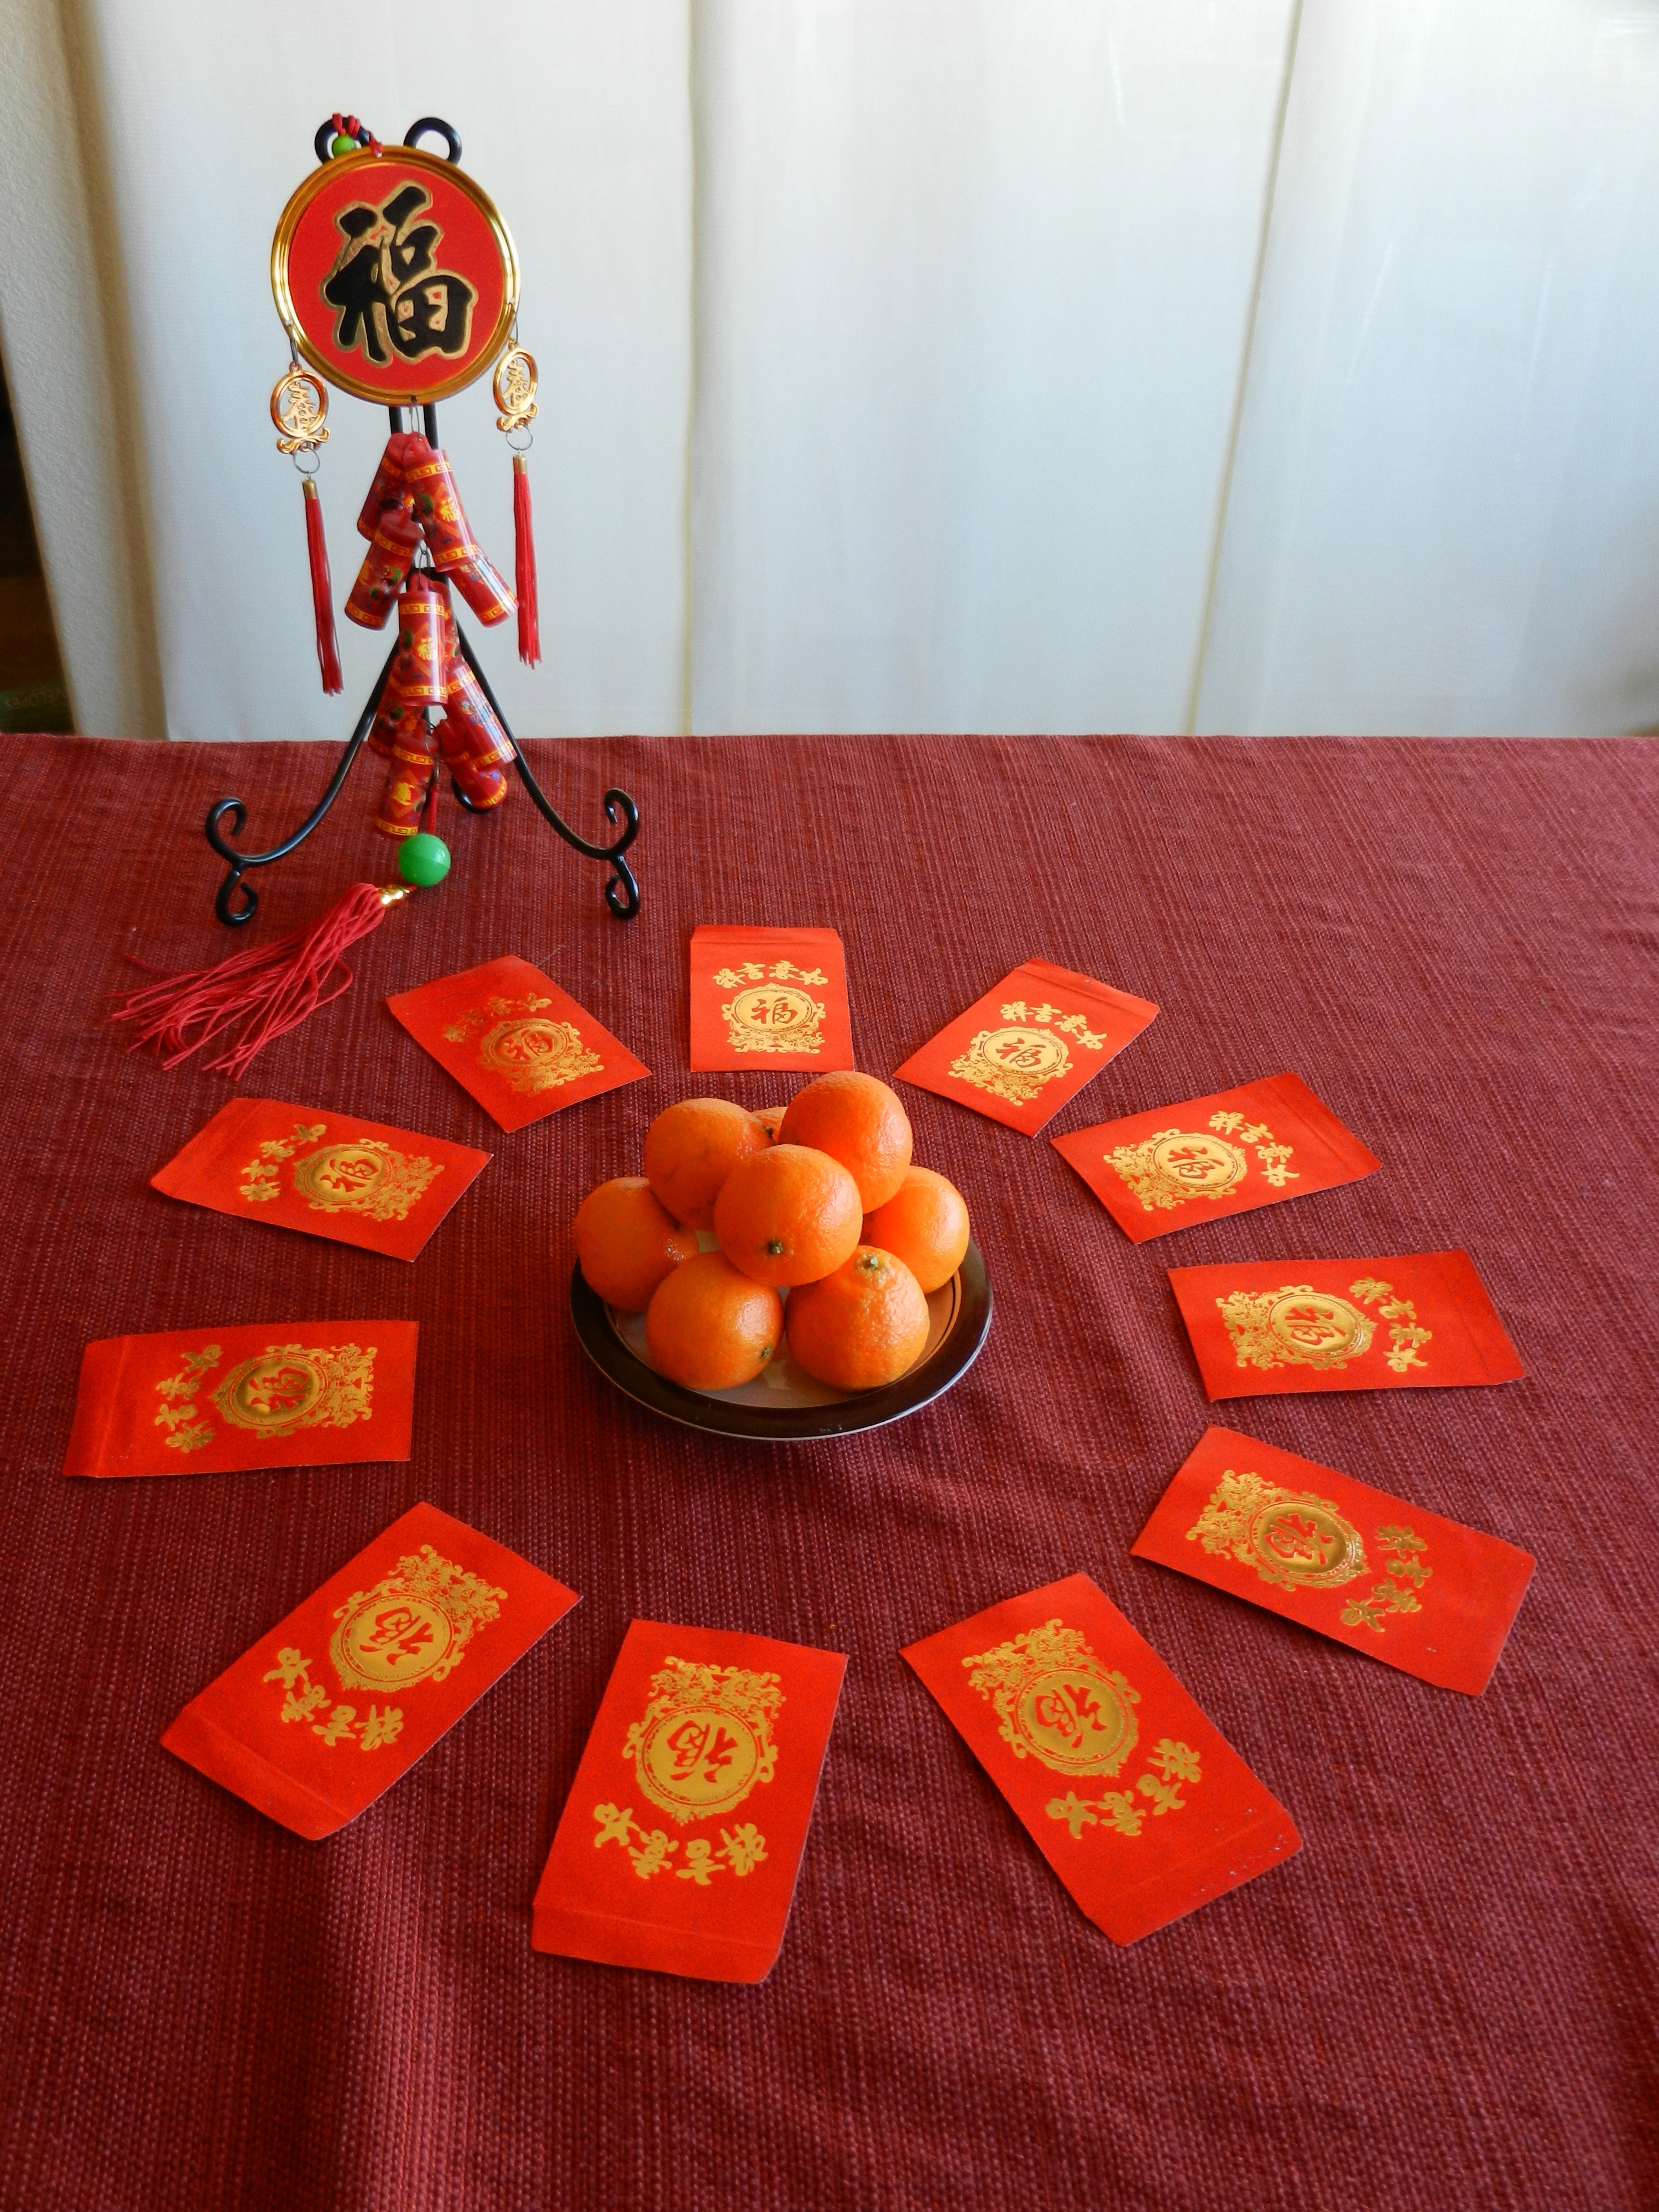 How To Manifest Good Luck In The New Year Norines New Life 80